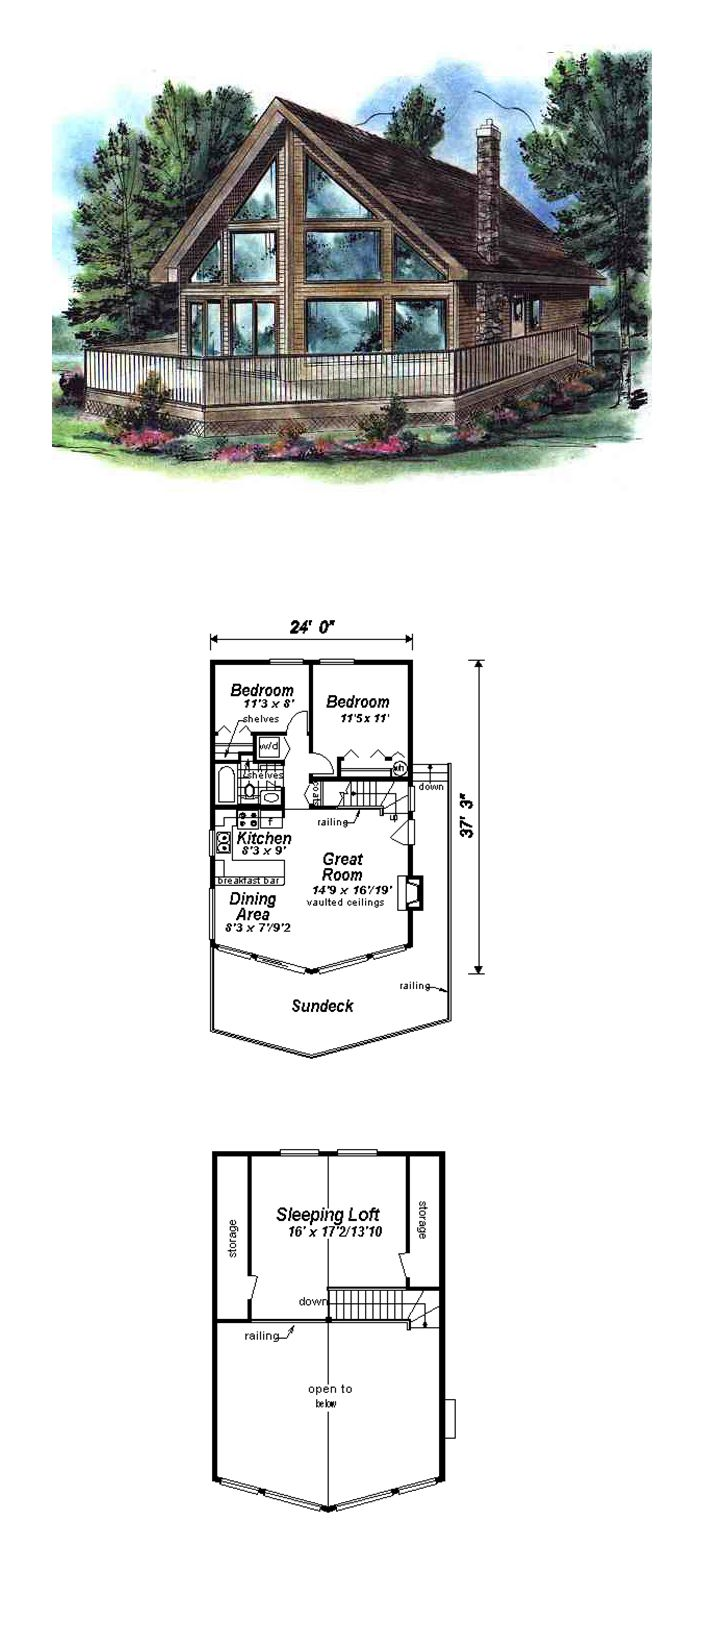 Contemporary Style House Plan 58502 With 3 Bed 1 Bath Lake House Plans Contemporary House Plans Pool House Designs